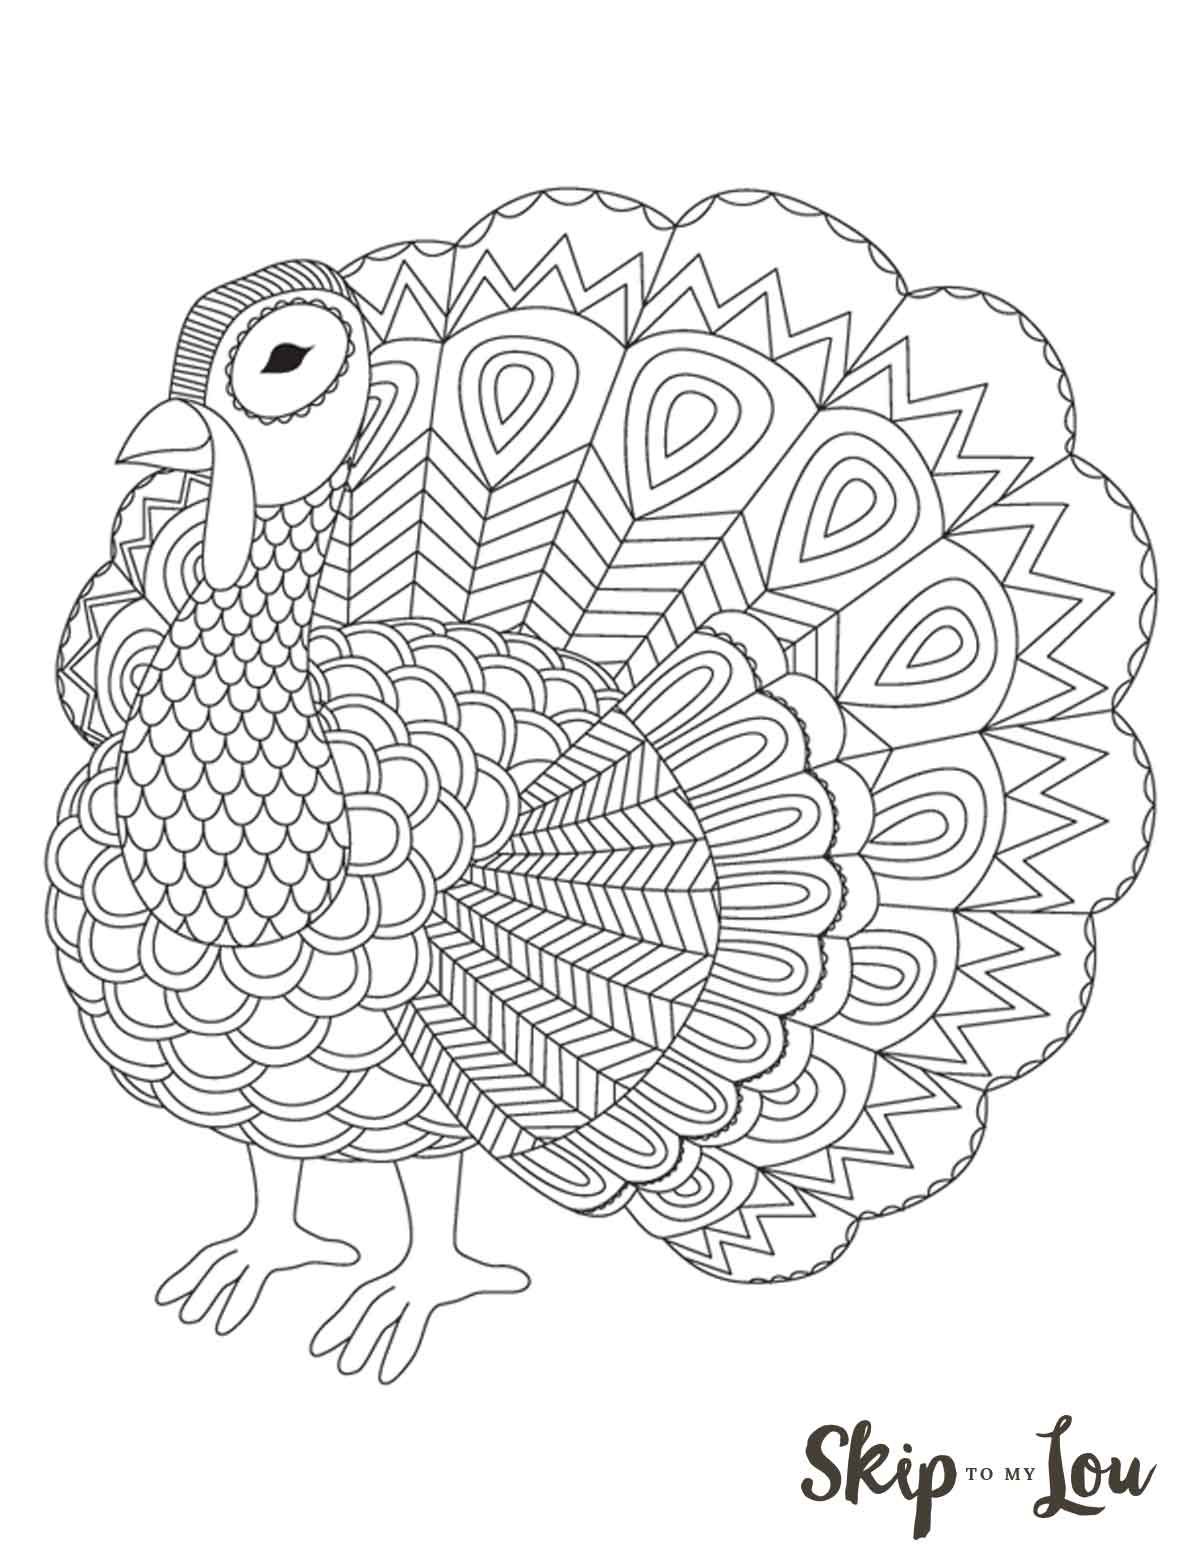 Get Kids Excited About Thanksgiving With These Free Turkey Coloring Pages From Young To